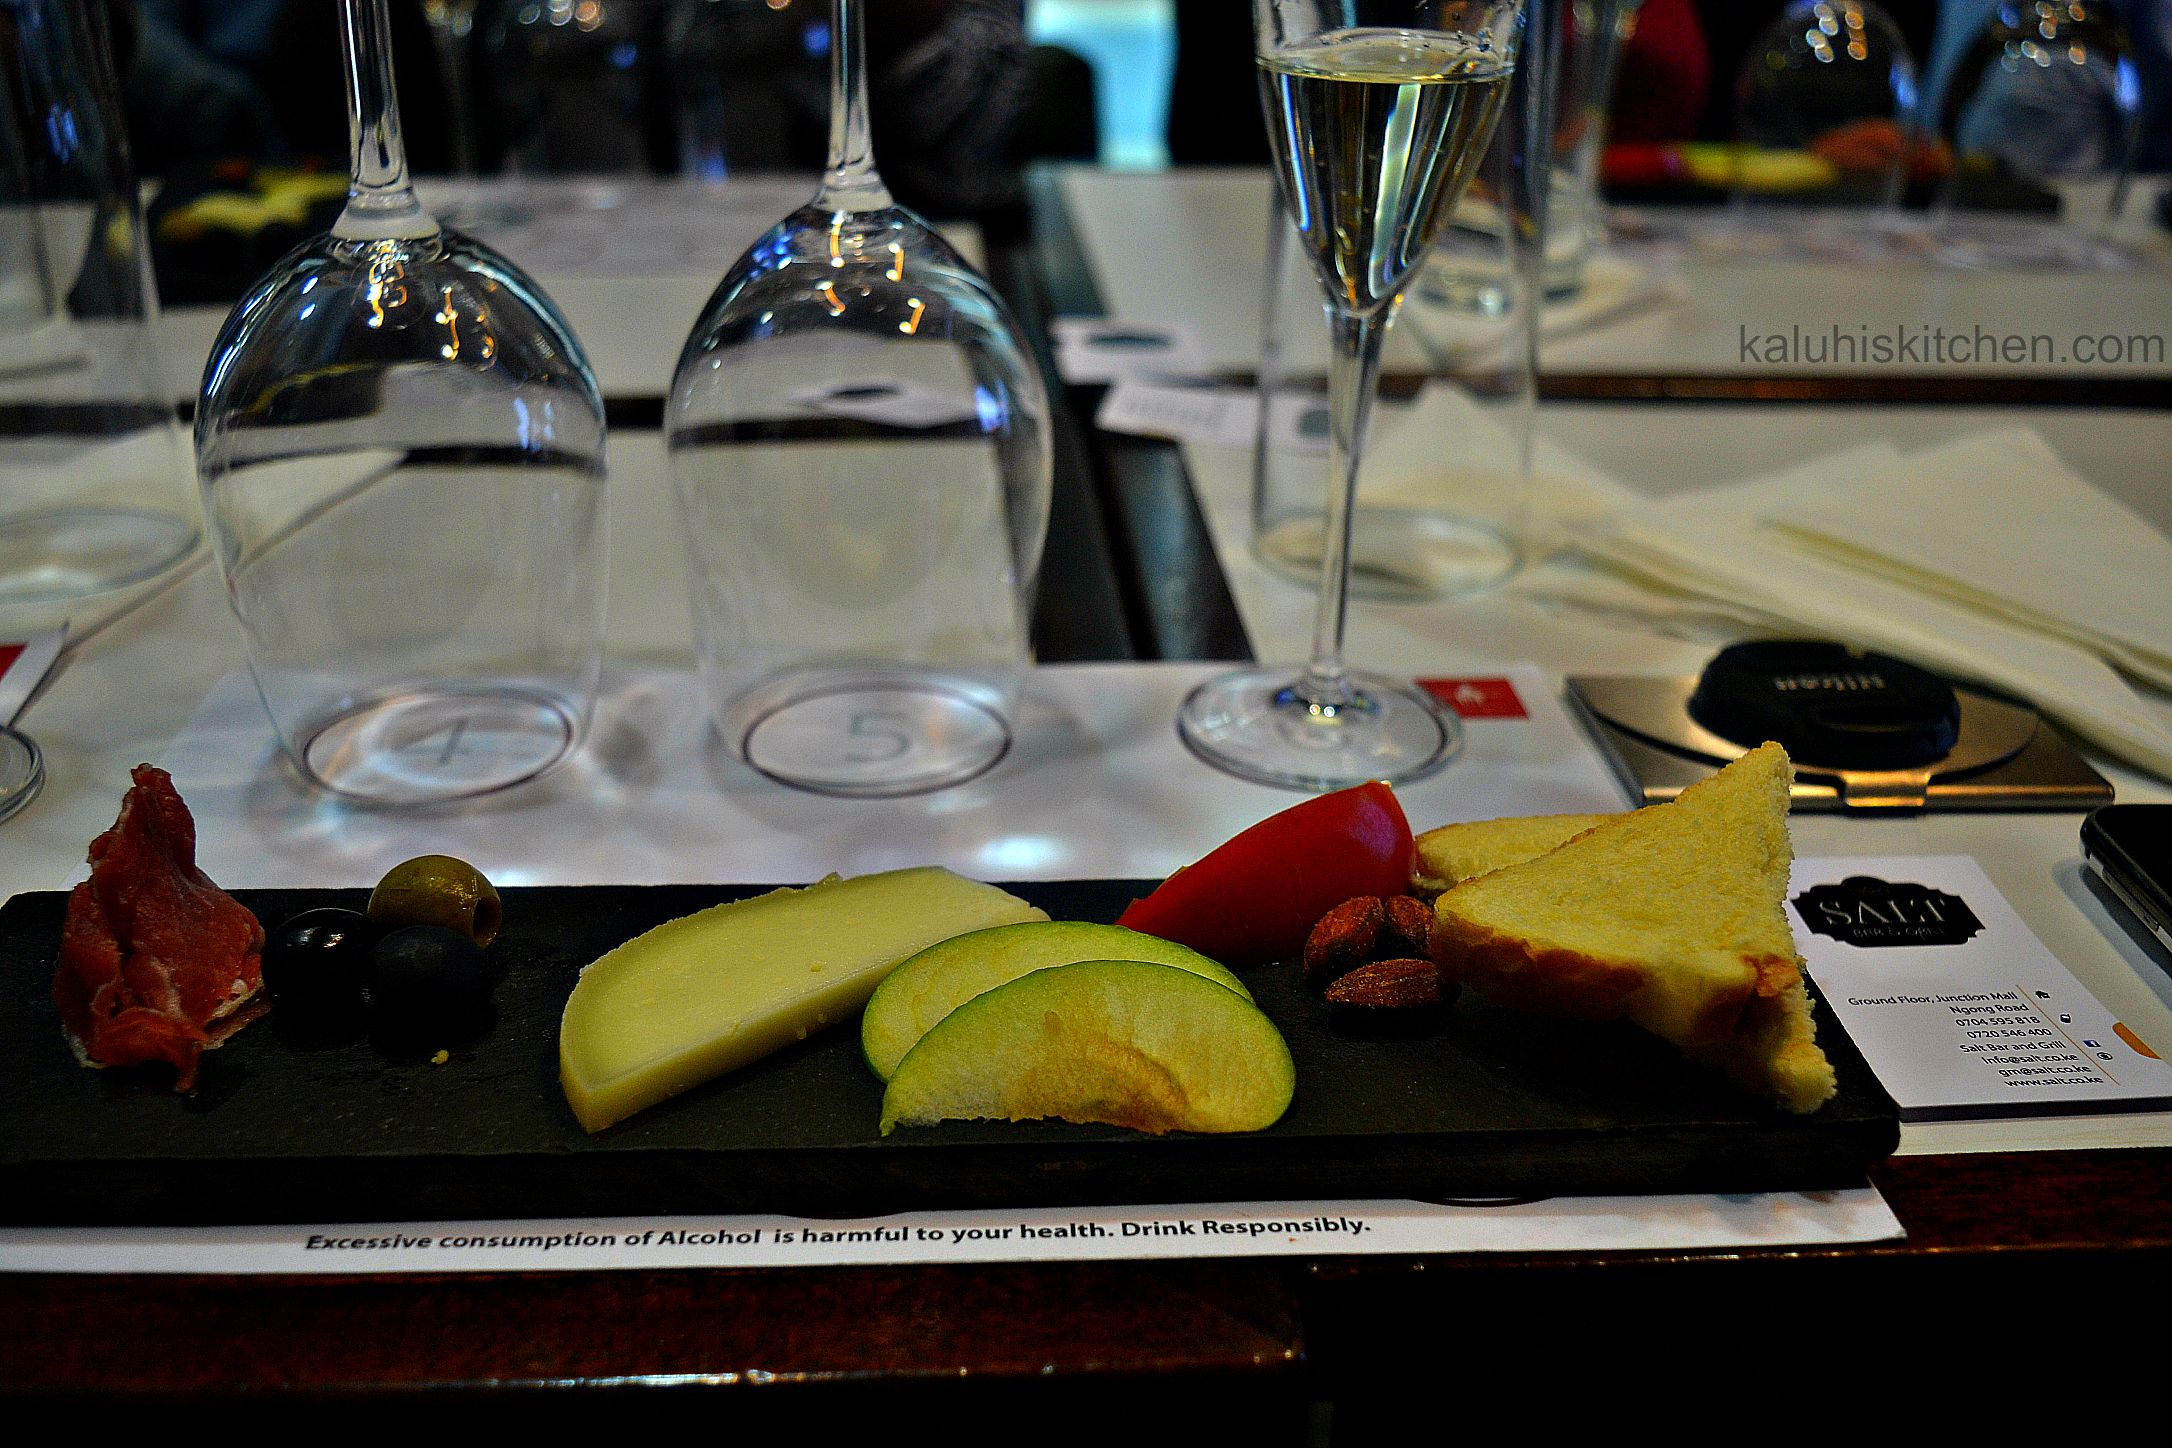 goat cheese, toast, tomato, almonds and olives are some of the food that accopmanies the cava brut as served by salt bar and grill_kaluhiskitchen.com